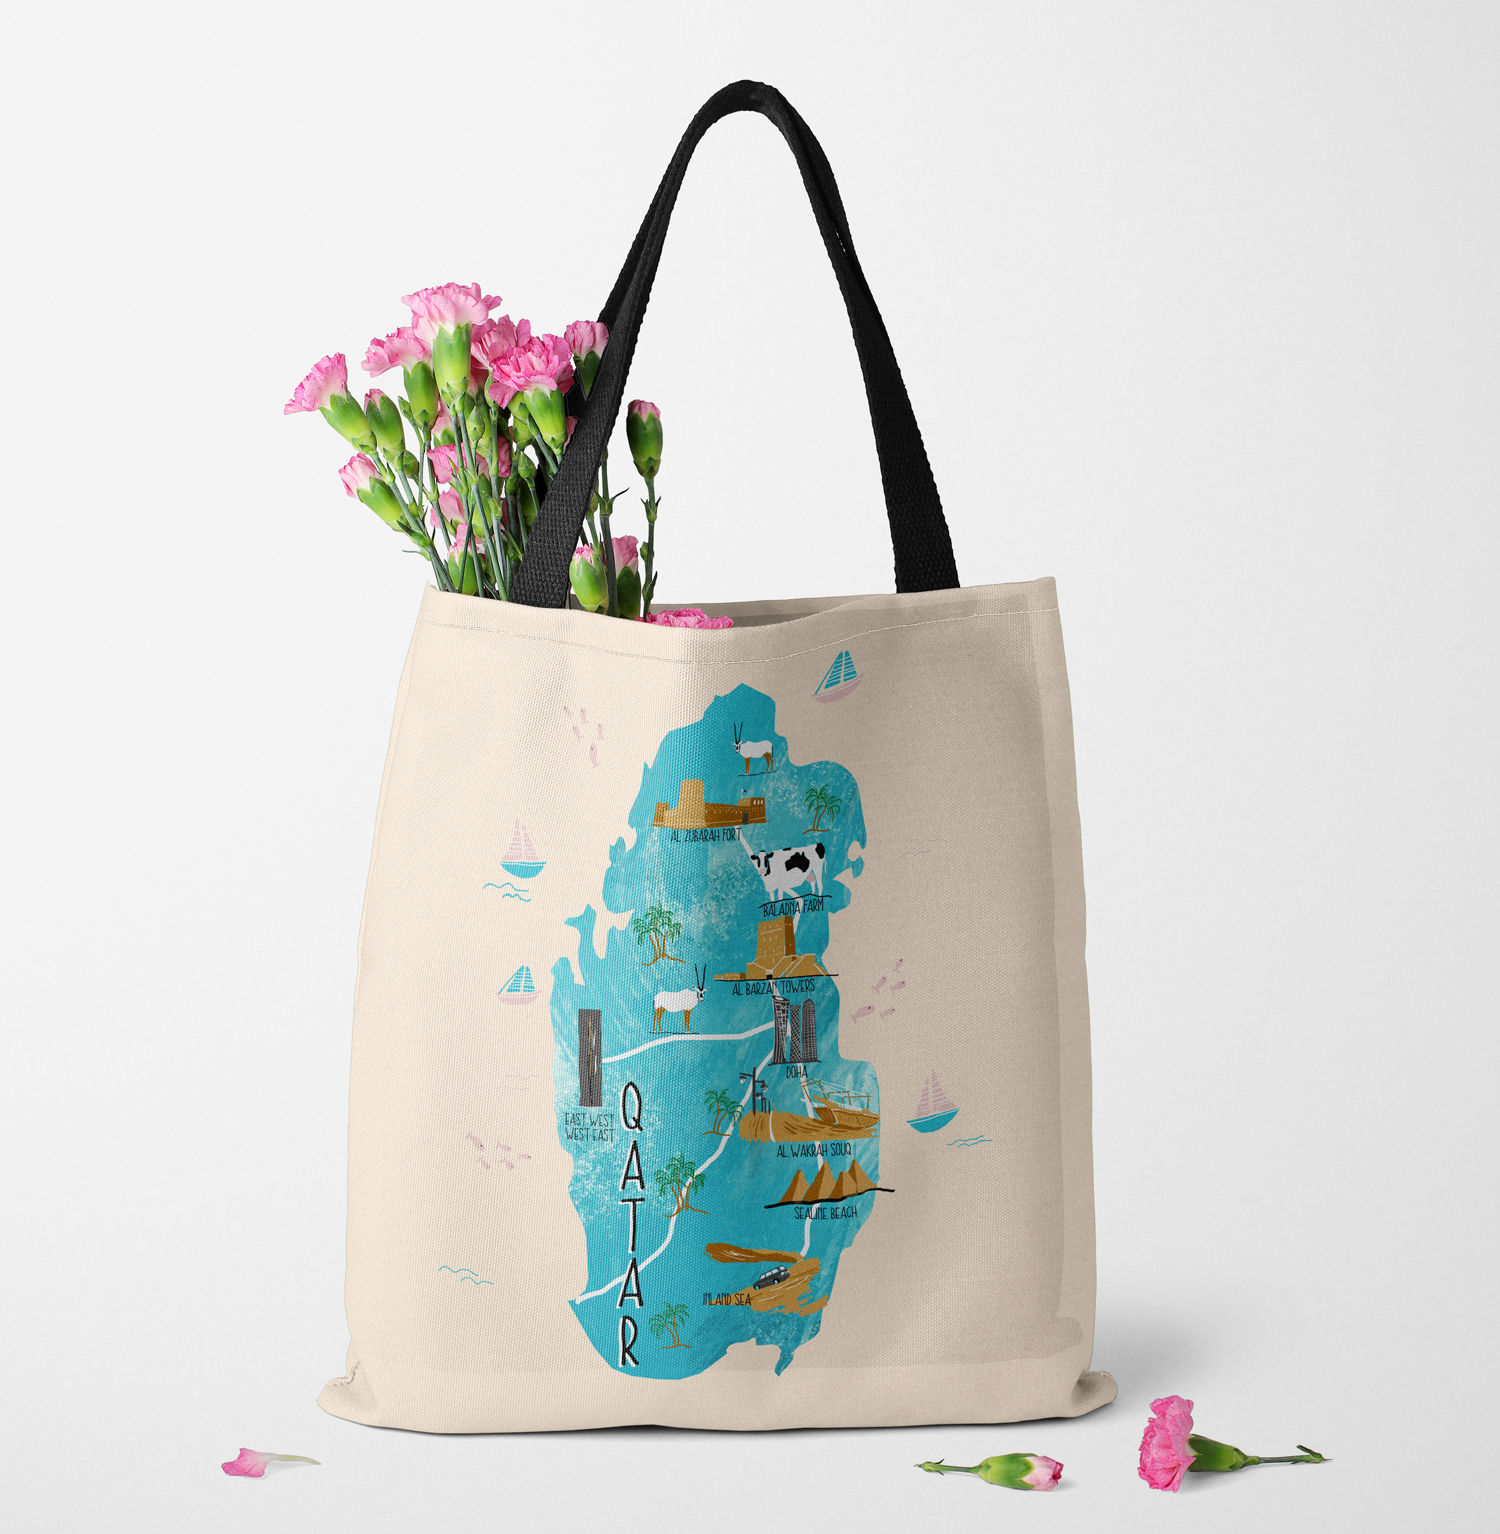 Qatar map illustration tote bag by Zakkiya Hamza